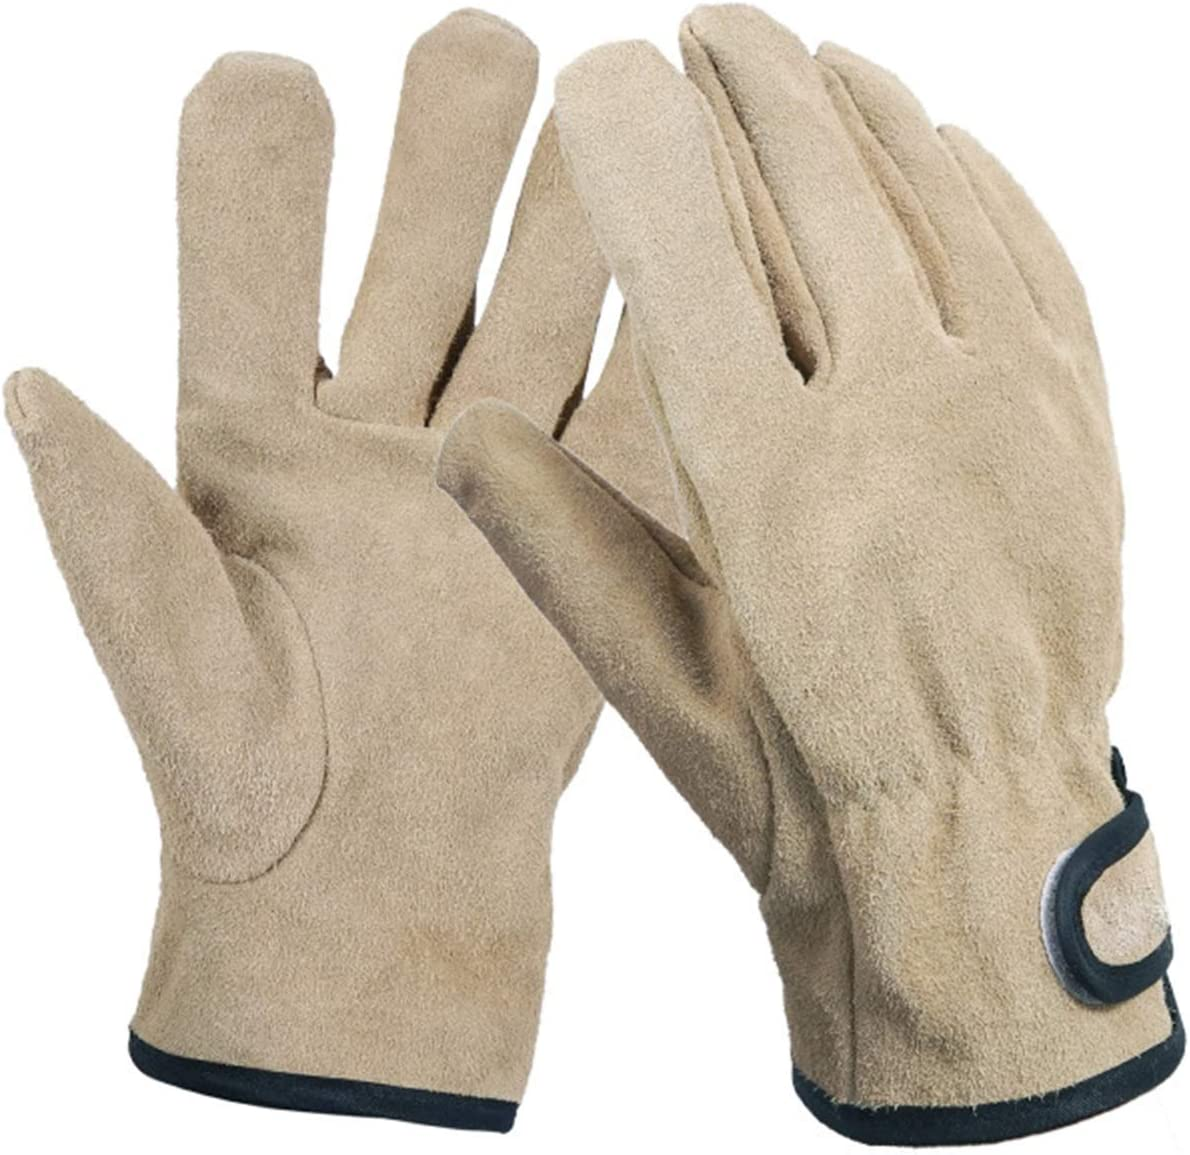 Barbecue Long Beach Mall Gloves San Francisco Mall Welding Reusable Lea Resistant Fire Faux